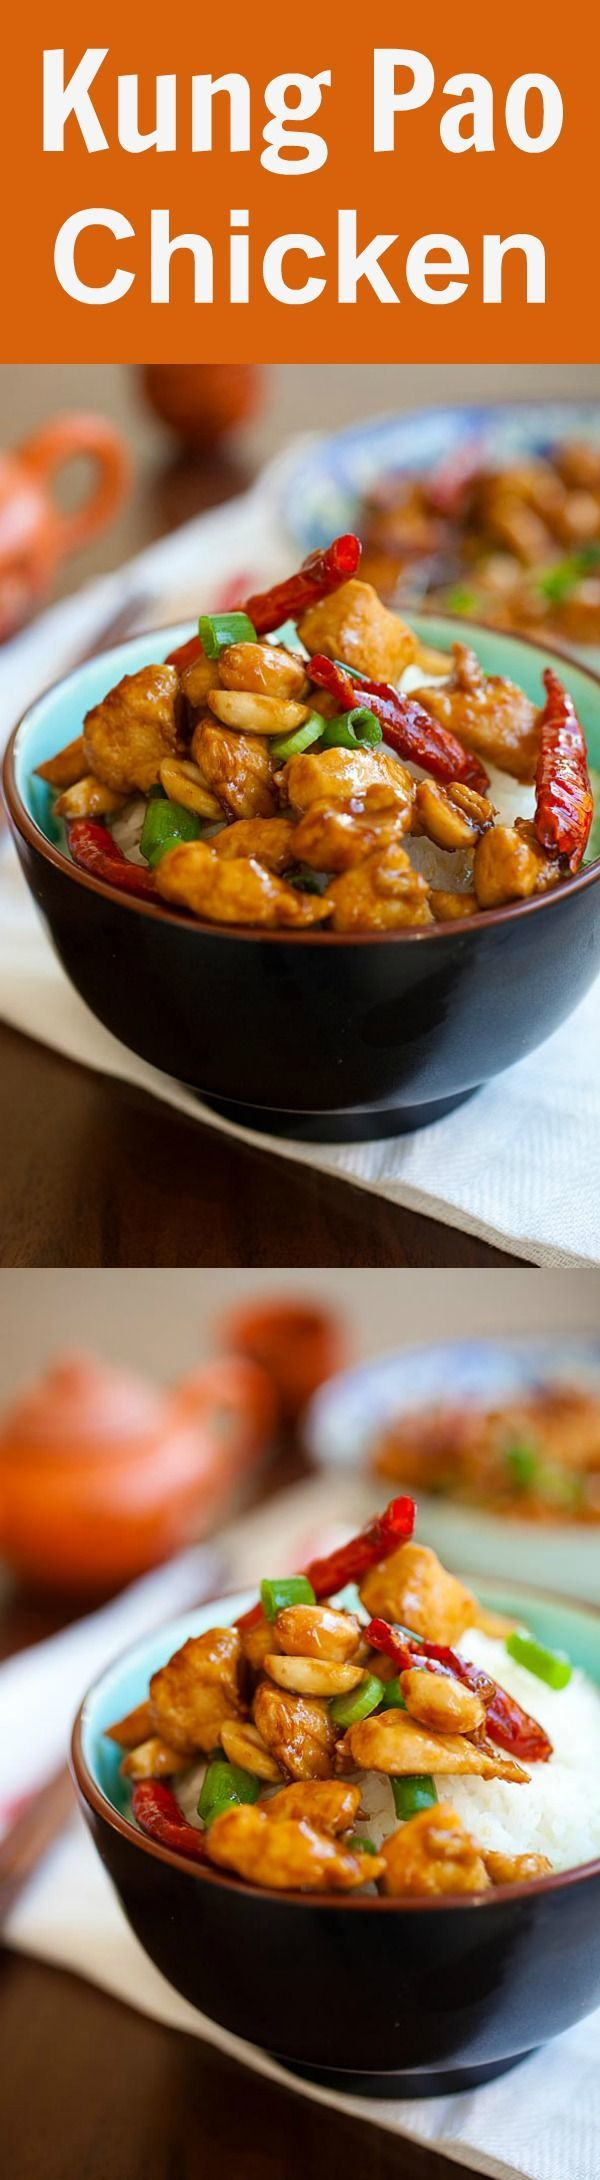 3299 best chinese food recipes images on pinterest asian food kung pao chicken healthy homemade chinese chicken in savory and spicy kung pao sauce best kung pao chicken recipe ever much better than takeout forumfinder Choice Image